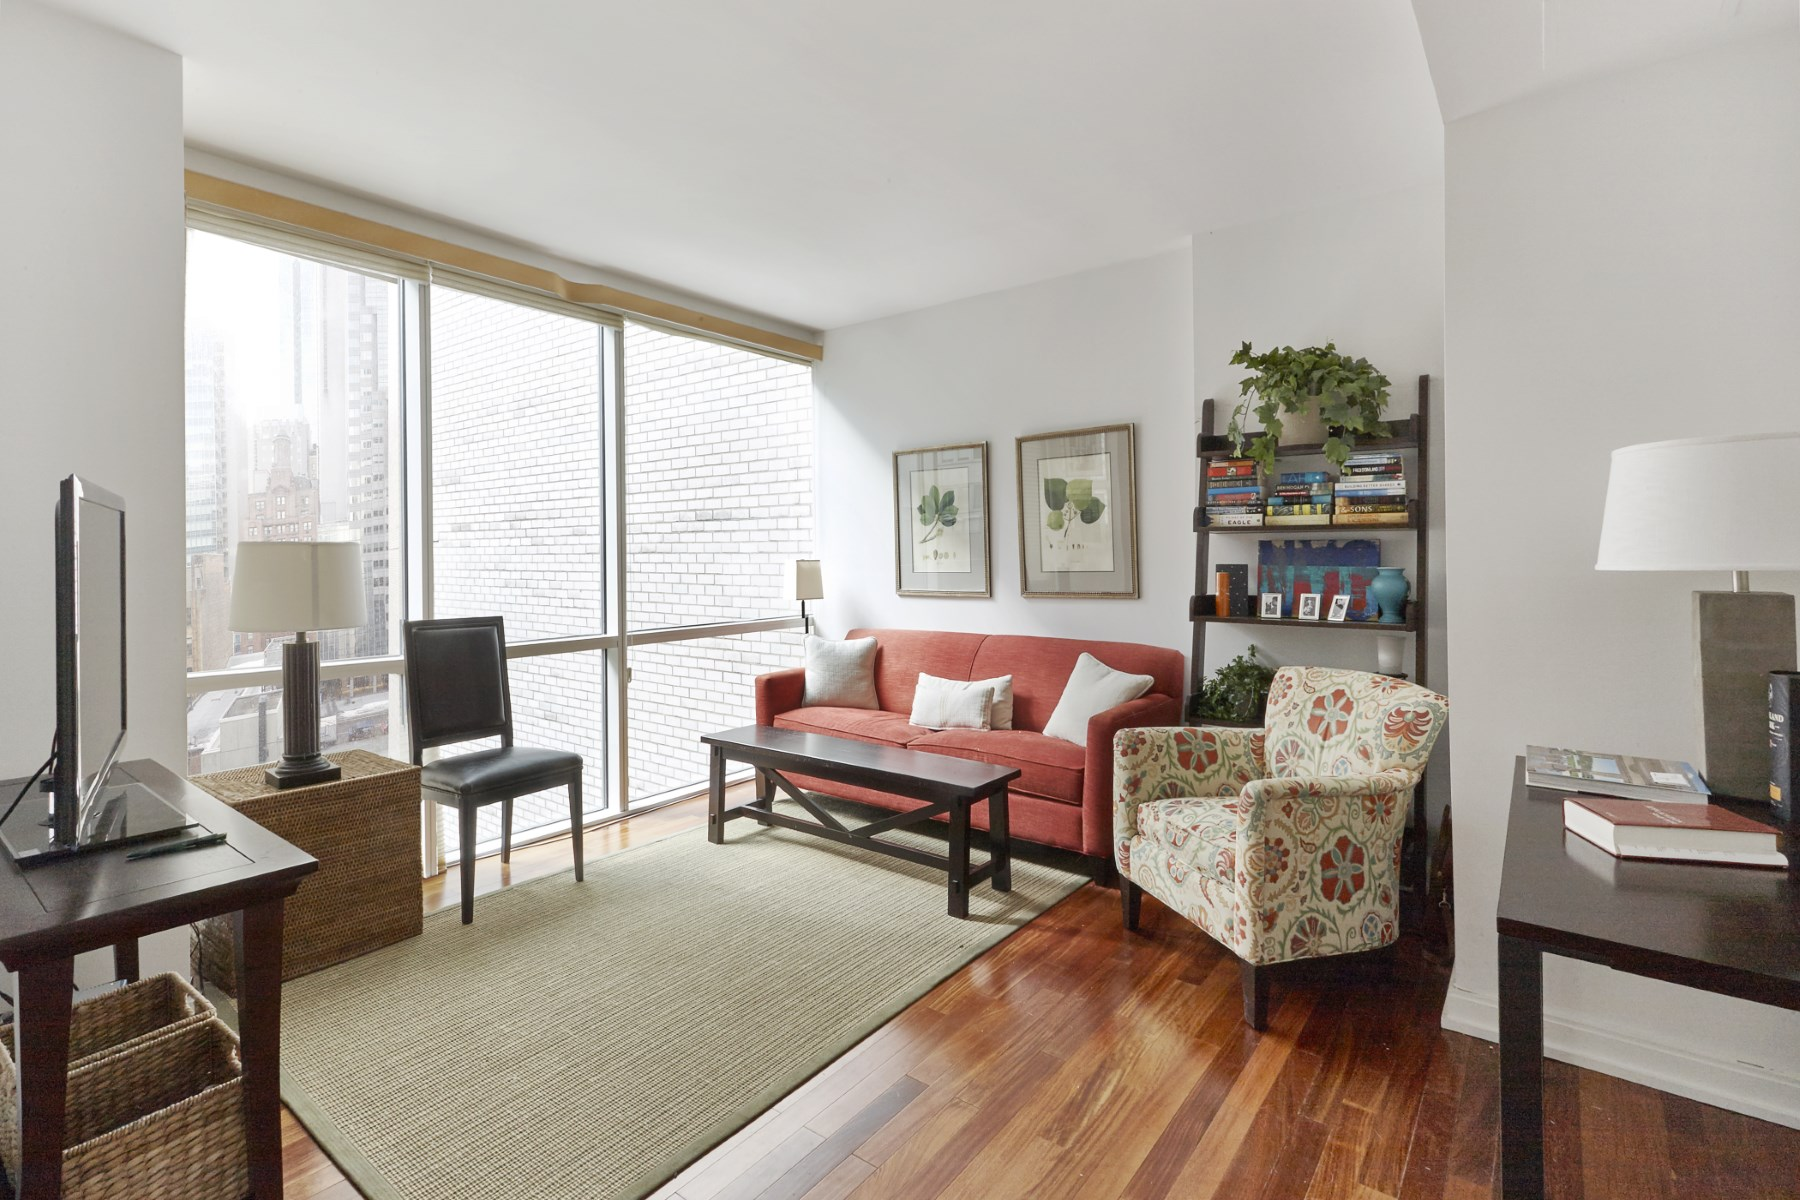 Condomínio para Venda às Luxury Midtown Condo 60 East 55th Street Apt 14b Midtown East, New York, Nova York 10022 Estados Unidos